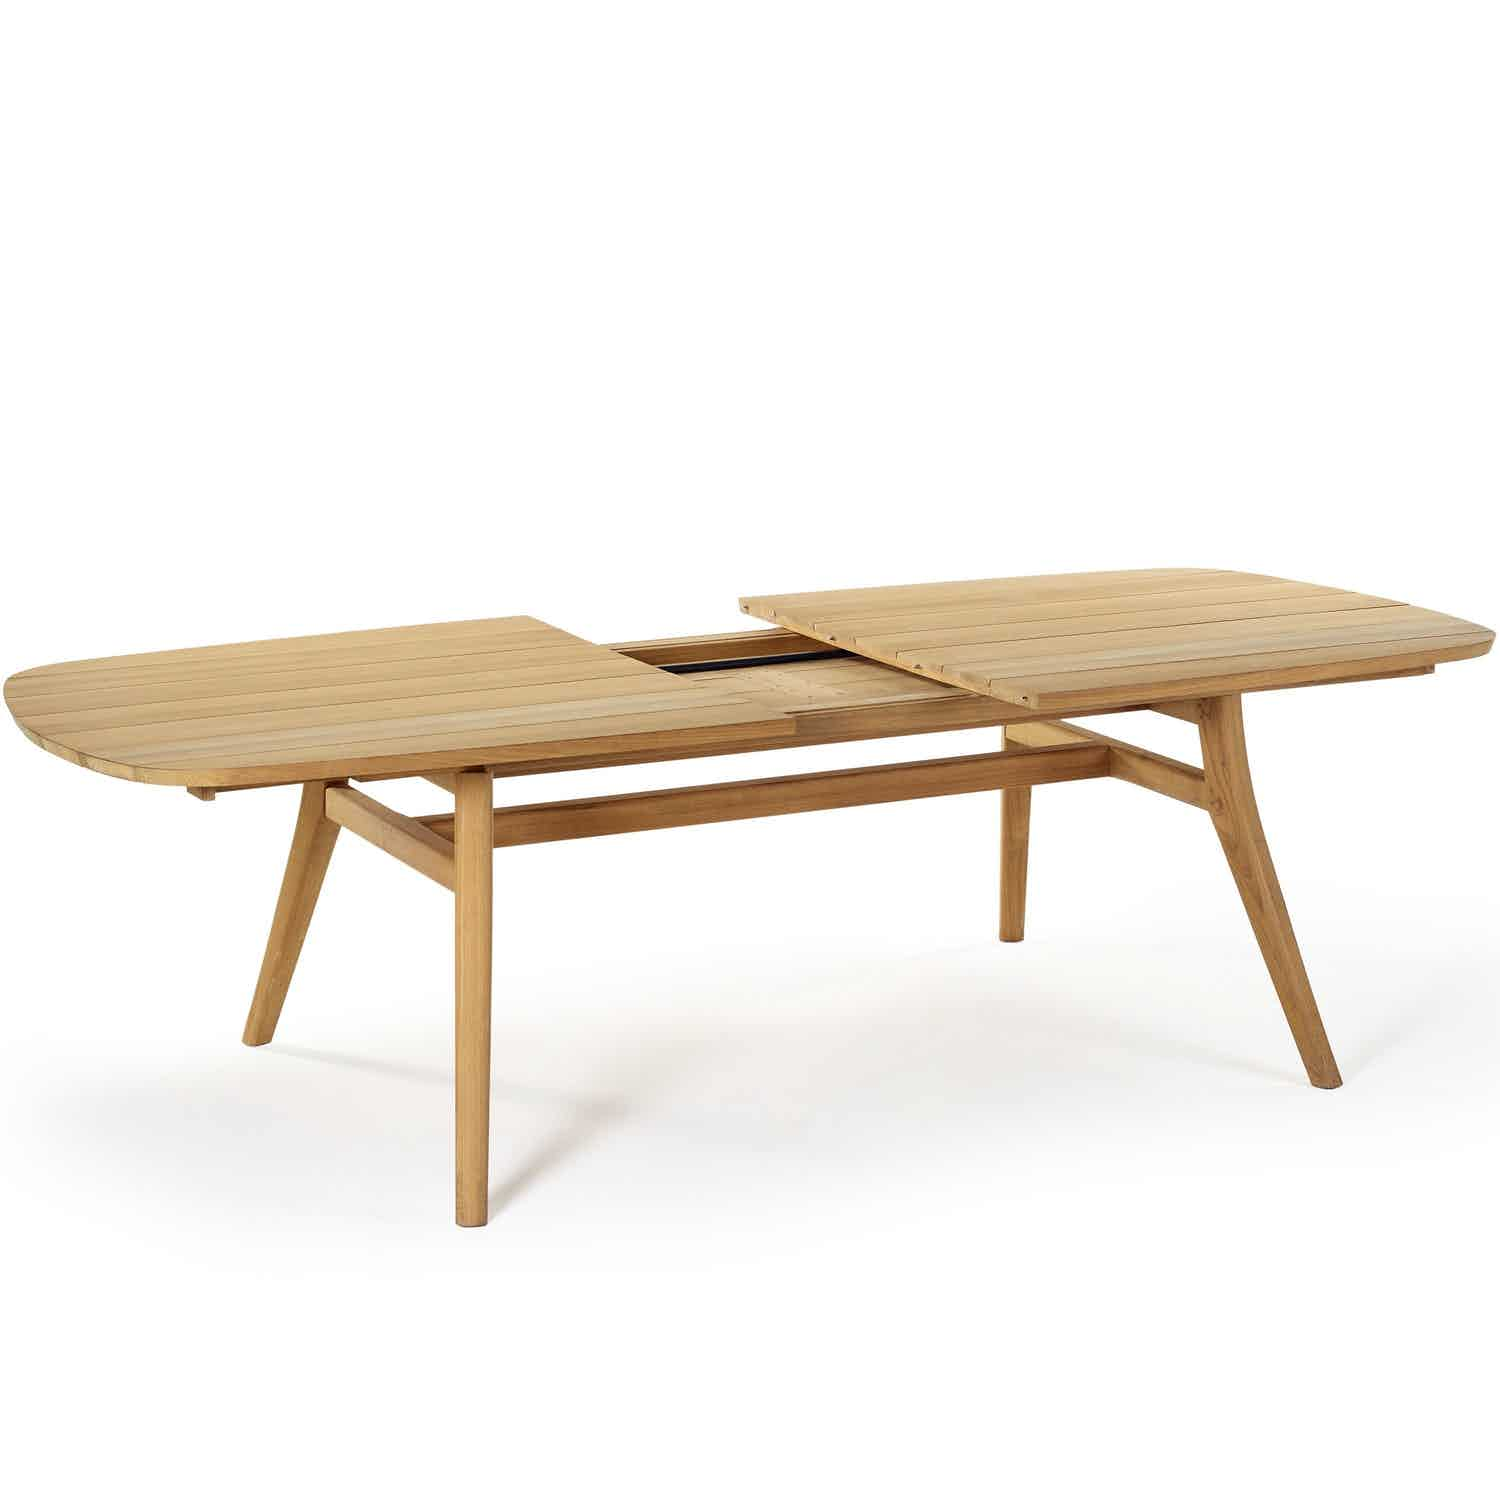 Royal Botania Zidiz Extendable Table2 Haute Living